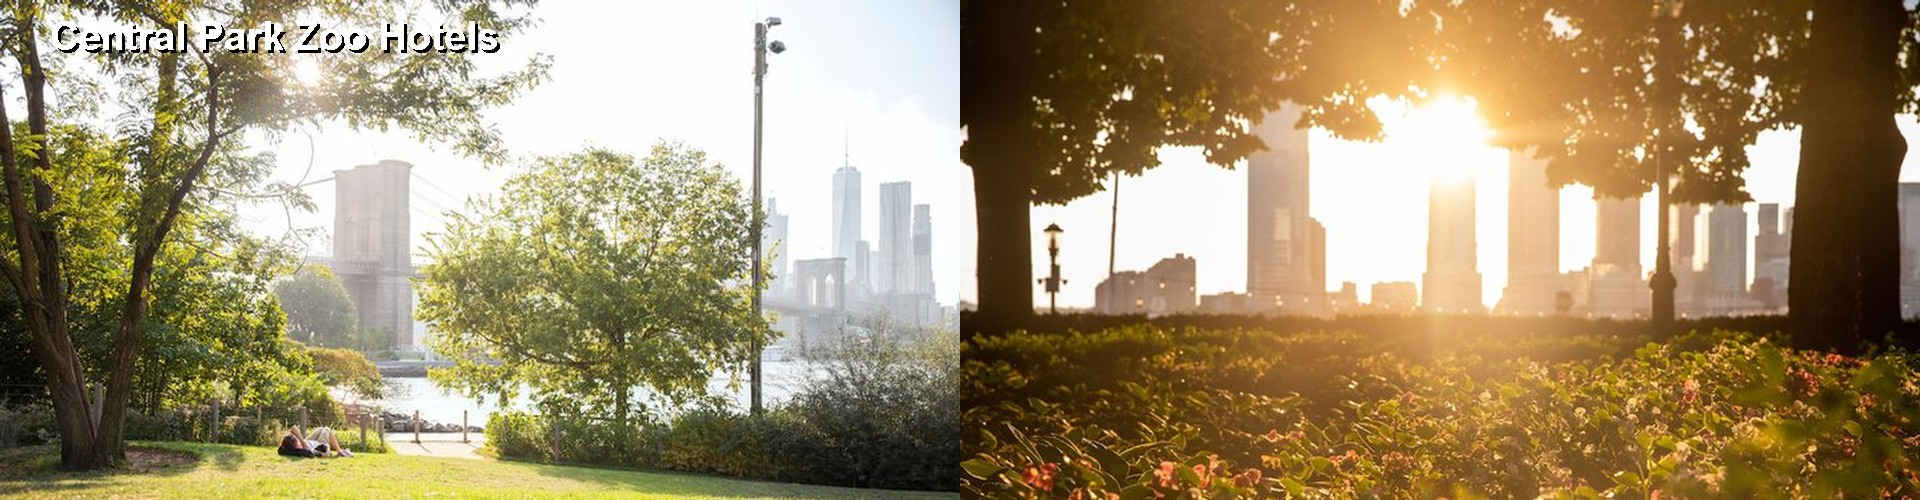 5 Best Hotels near Central Park Zoo